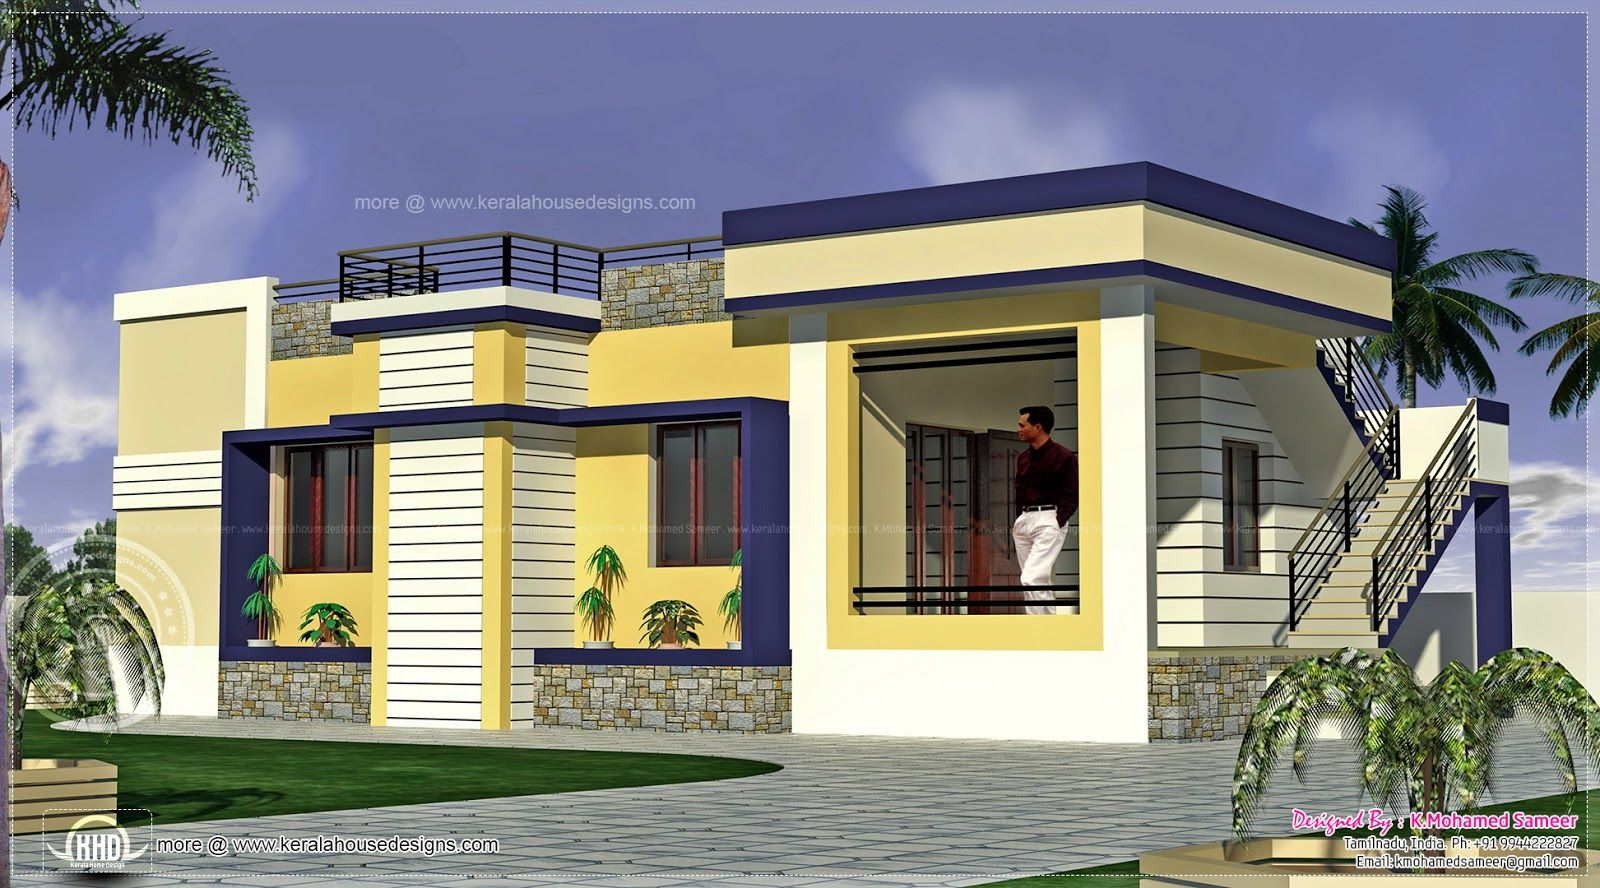 House details ground floor feet flat roof contemporary for Home models in tamilnadu pictures